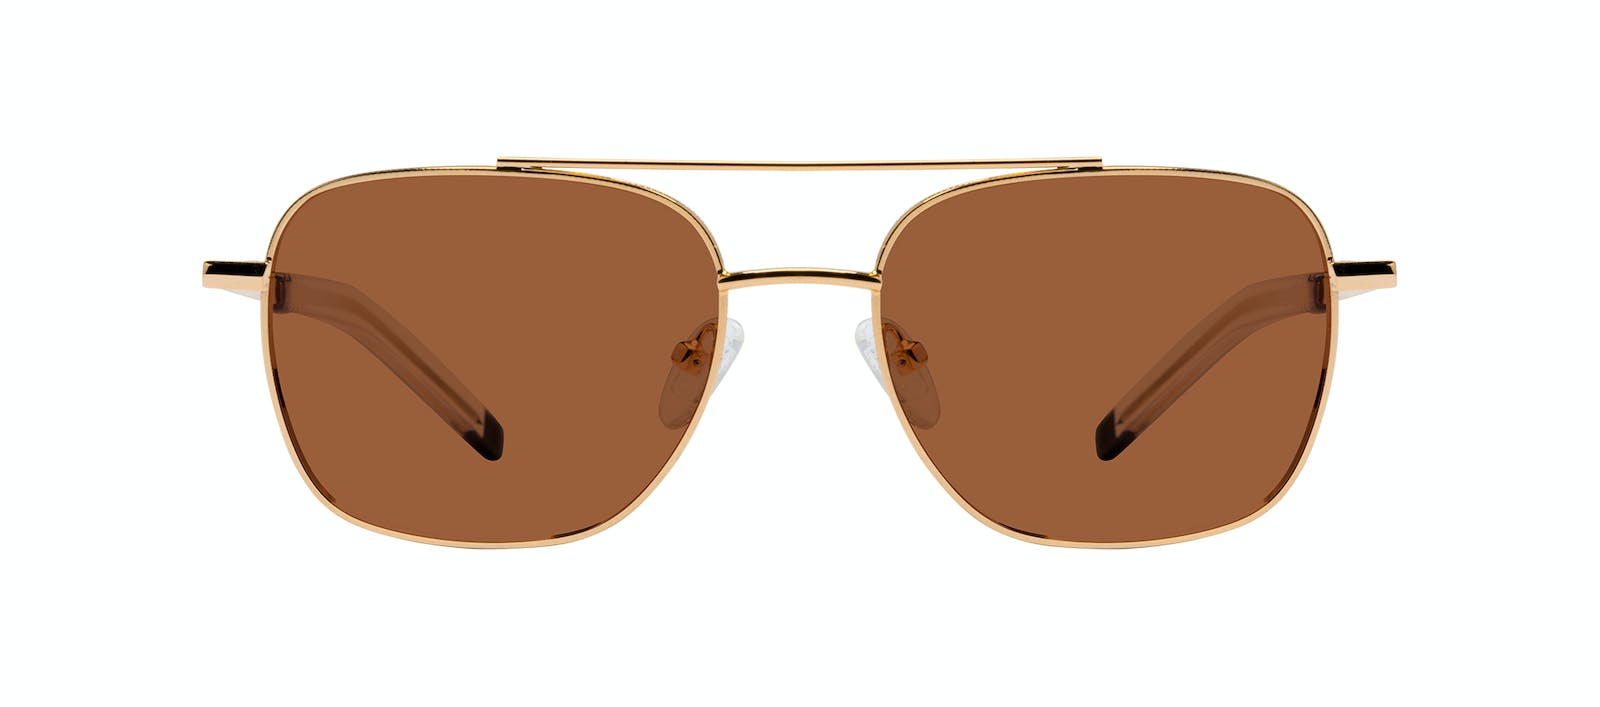 806bfb09fab Affordable Fashion Glasses Aviator Sunglasses Men Drift Gold Front